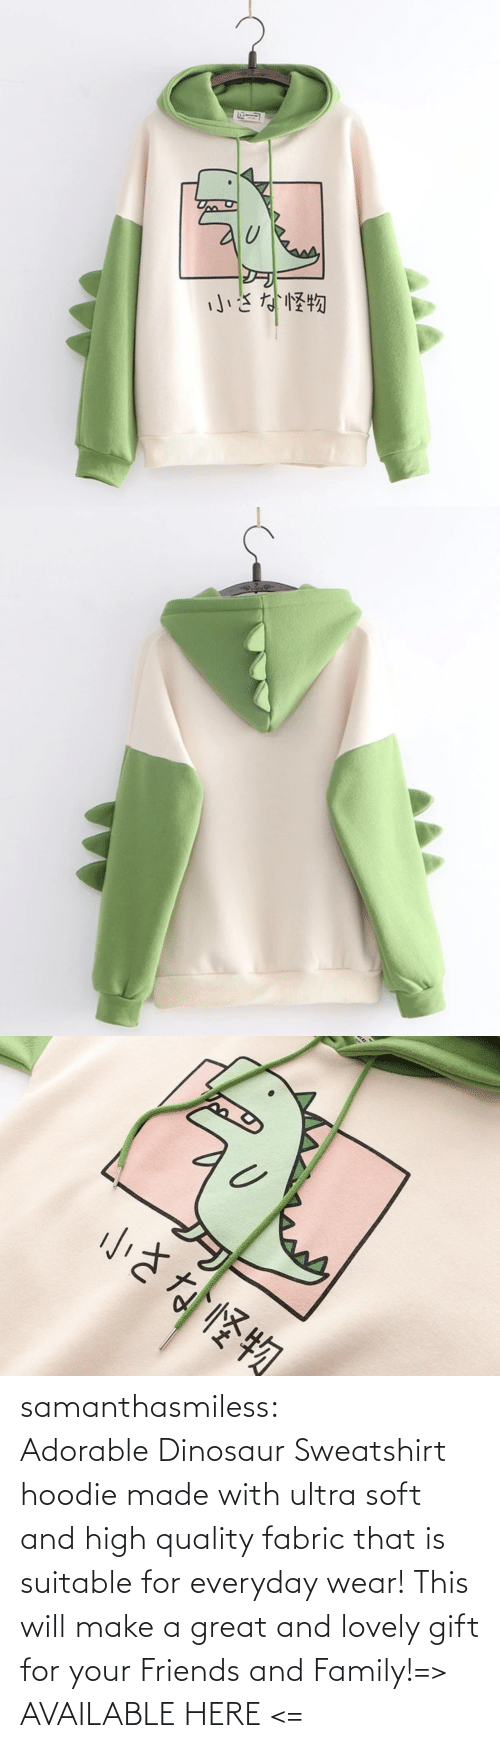 Dinosaur, Family, and Friends: samanthasmiless:  Adorable Dinosaur Sweatshirt hoodie made with ultra soft and high quality fabric that is suitable for everyday wear! This will make a great and lovely gift for your Friends and Family!=> AVAILABLE HERE <=